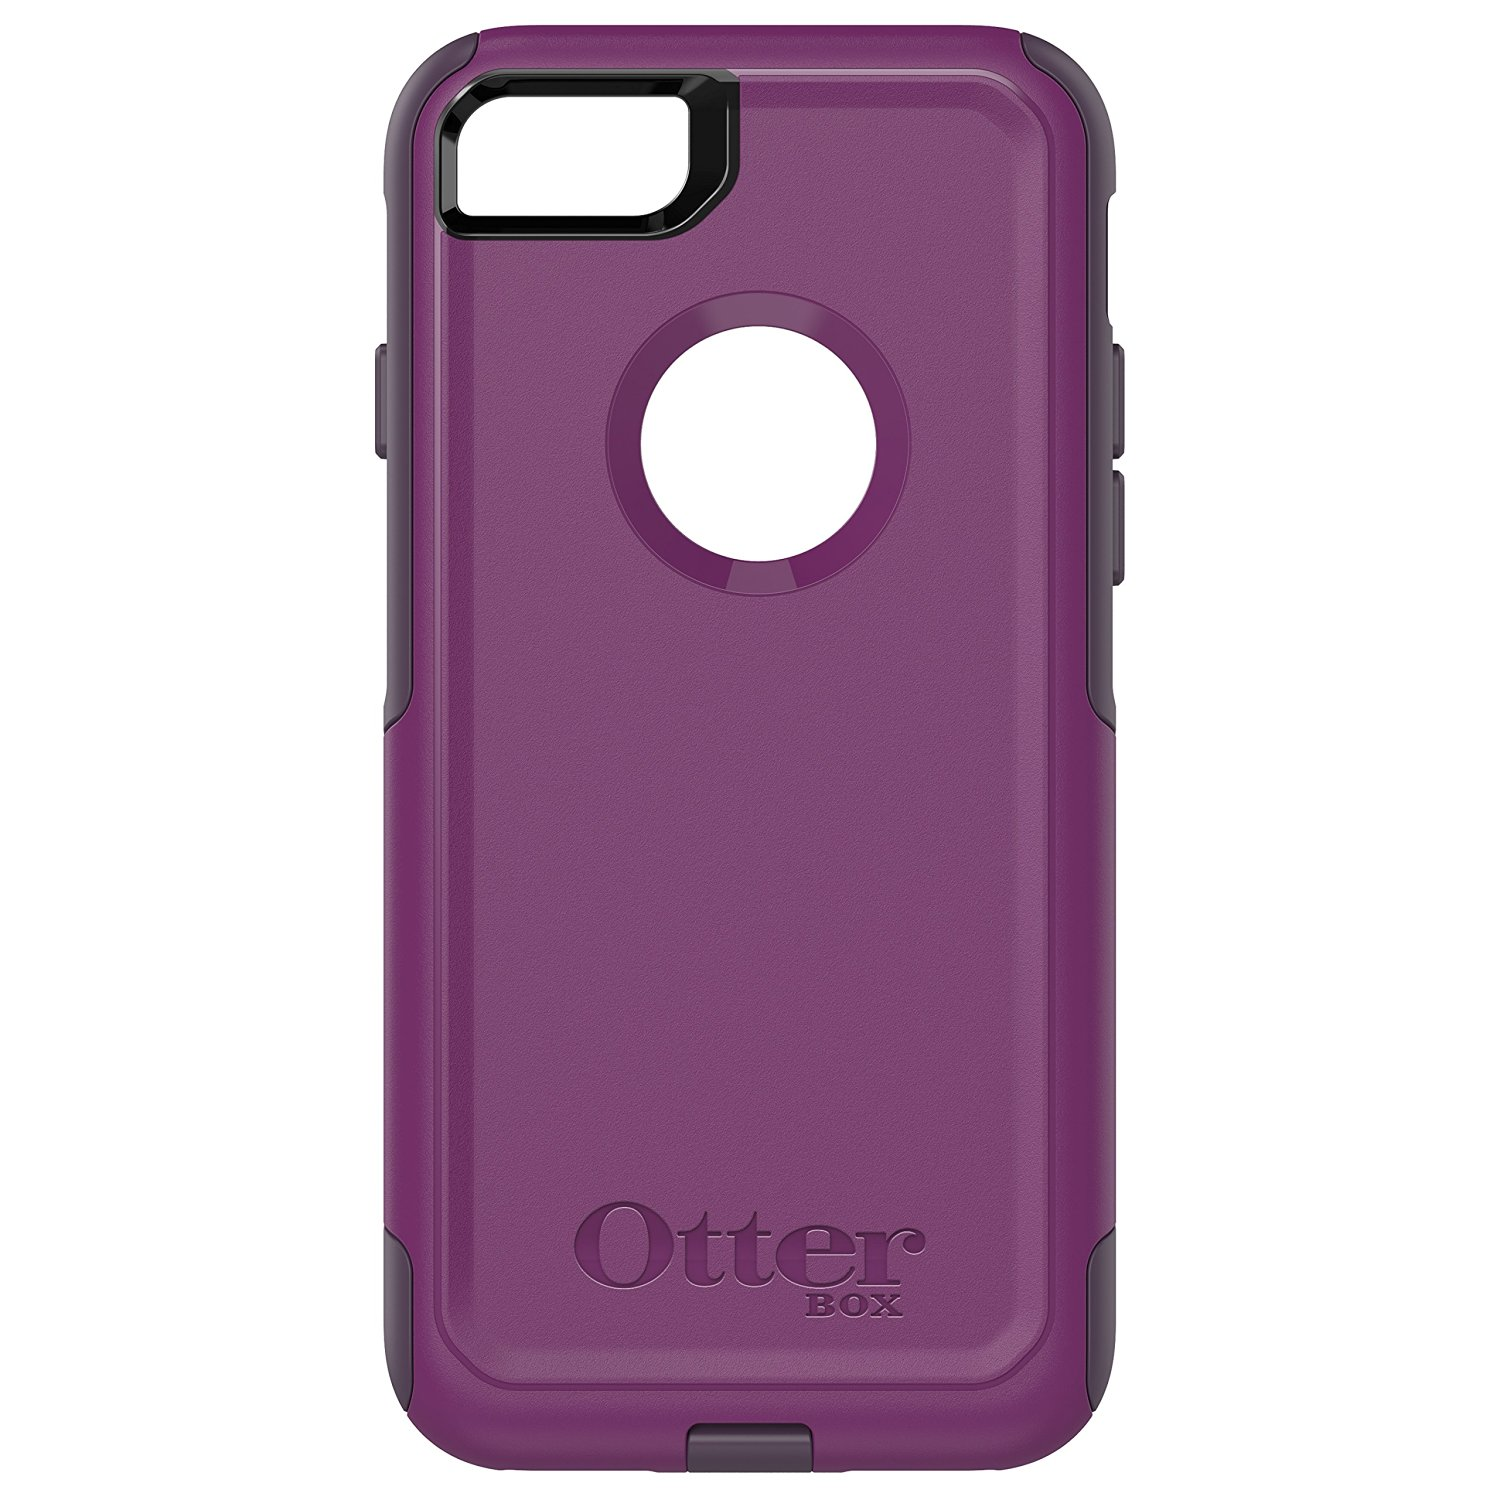 OtterBox-Commuter-Series-Drop-Protection-Sleek-Case-for-iPhone-7-iPhone-8-JE